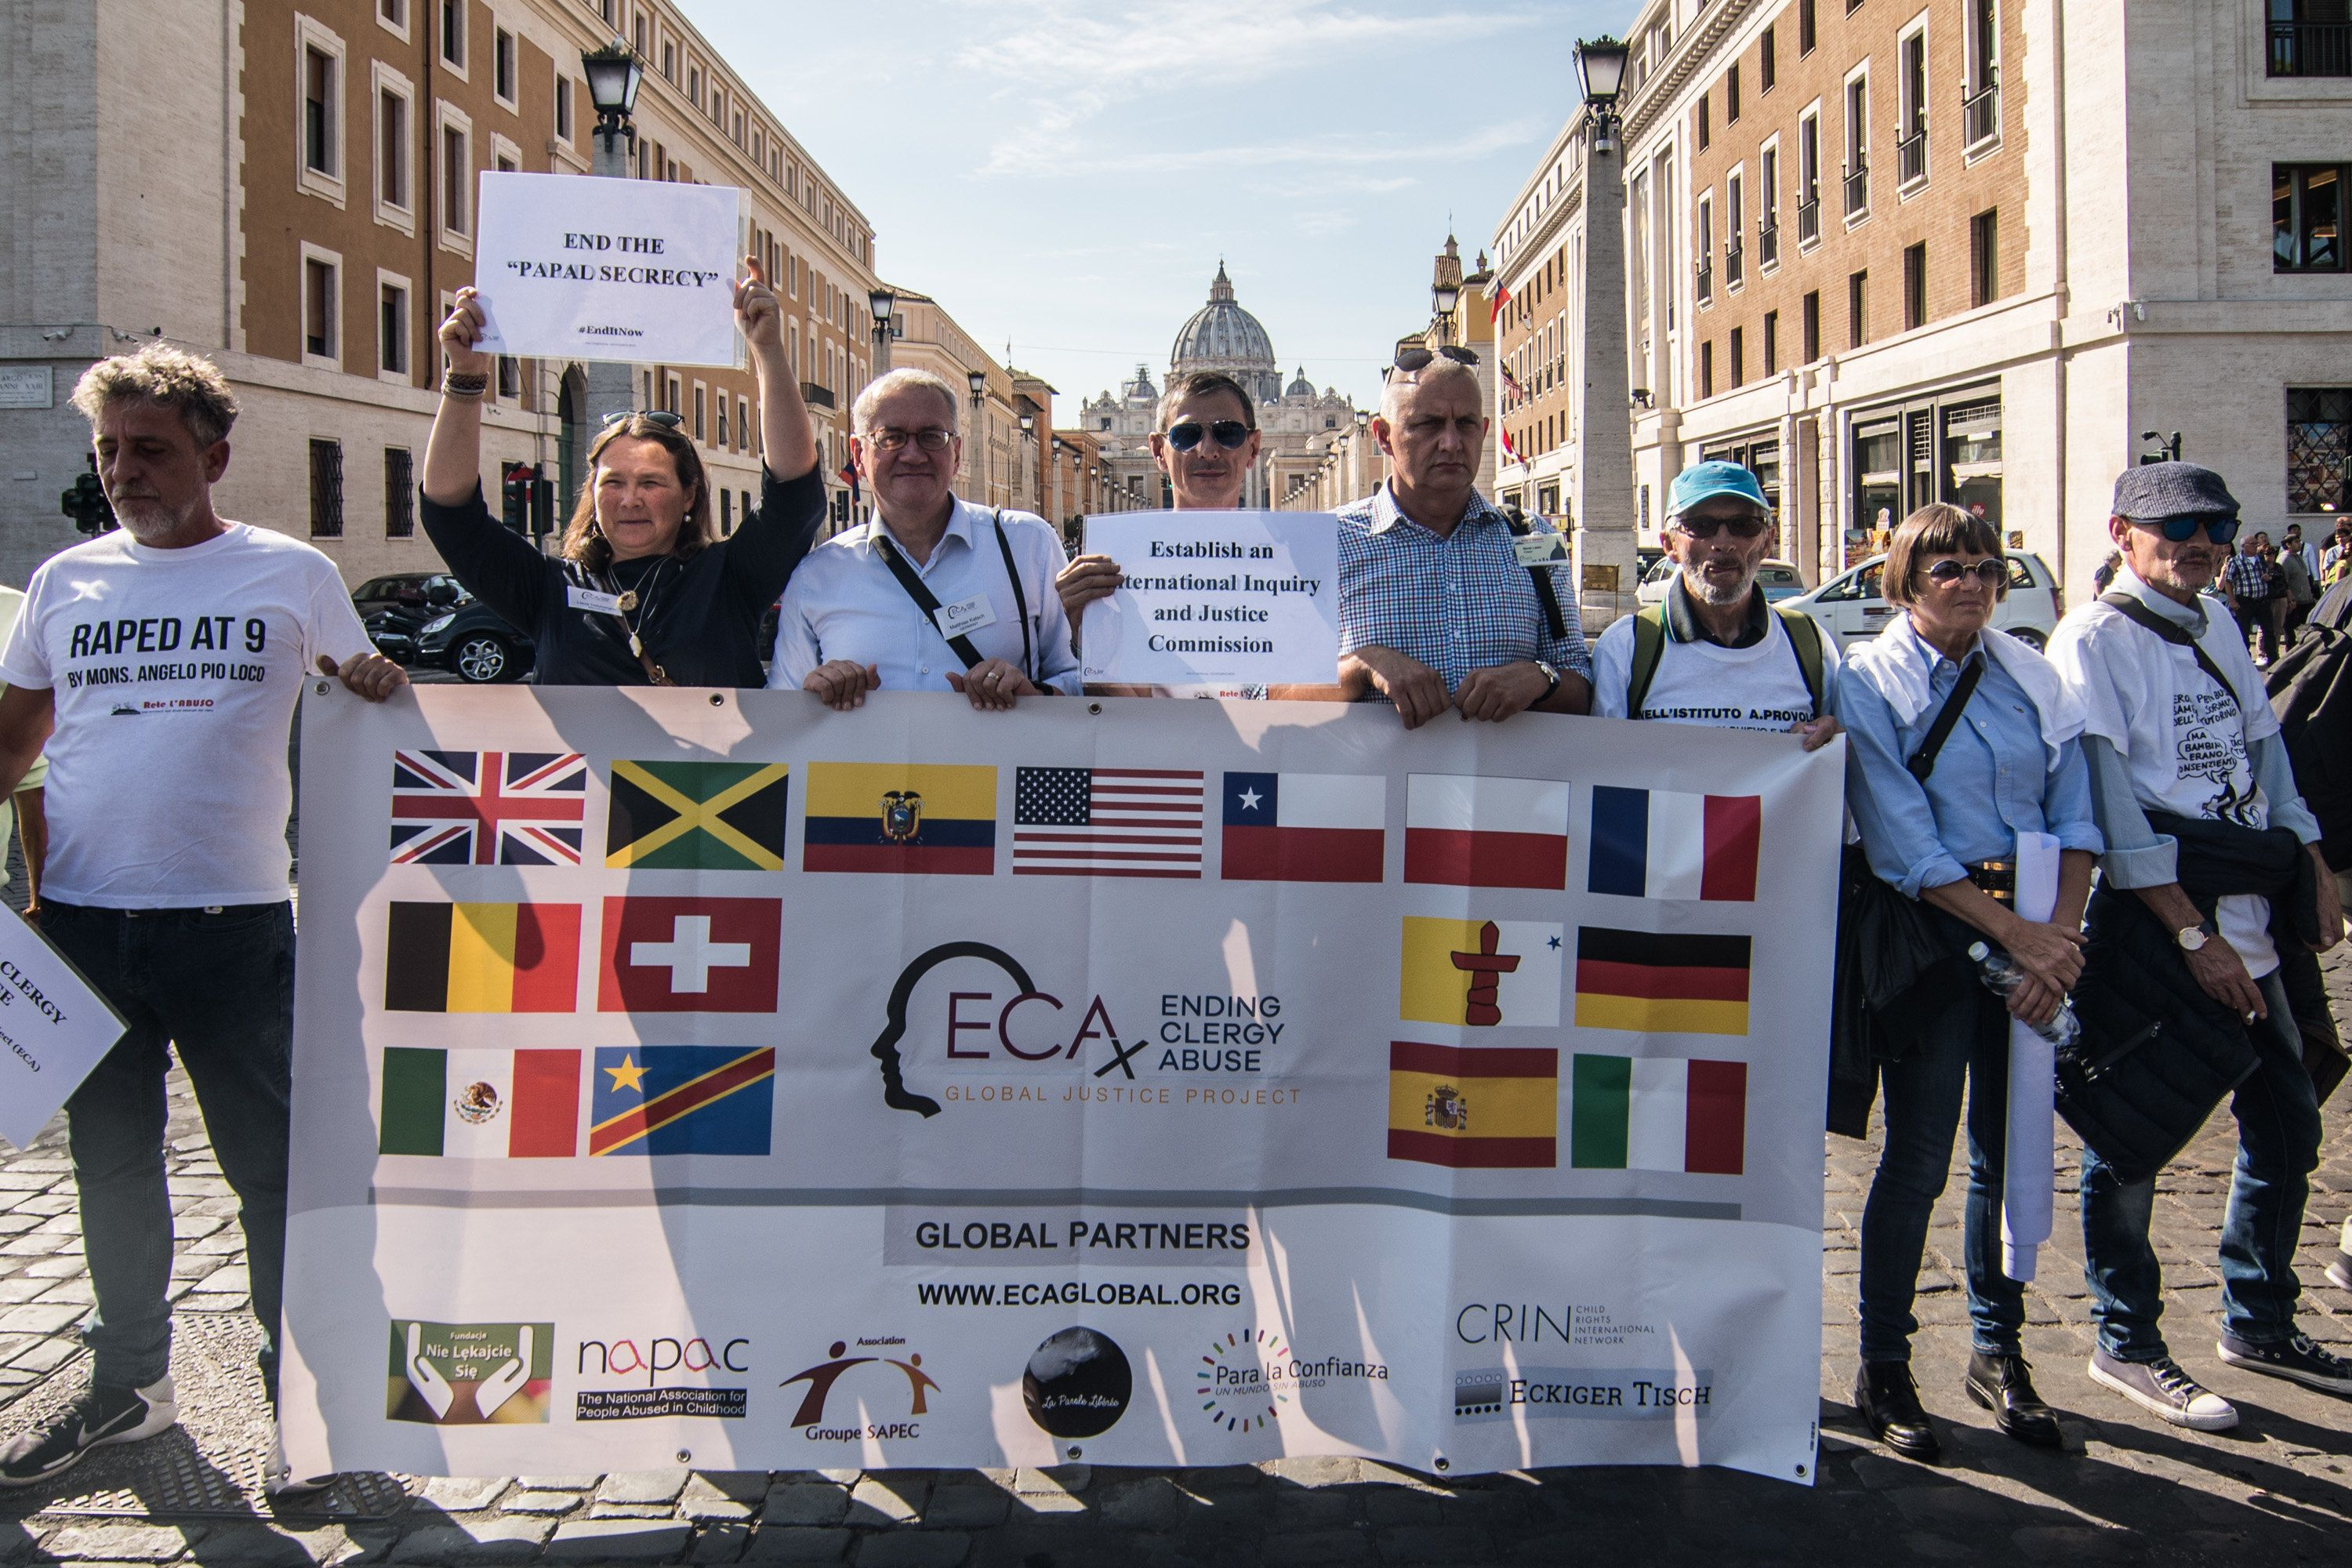 ROME, ITALY - OCTOBER 03:  Victims and protestors of the international association ECA Global show banners with messages addressed to Pope Francis on October 3, 2018 in Rome, Italy. Today is the opening of the Synod of Youth in Vatican and in Via della Conciliazione many victims of sexual abuse by clergy from all over the world join together to protest against the inactivity of Pope Francis and the Vatican on the issue of clerical pedophilia.  (Photo by Simone Padovani/Awakening/Getty Images)